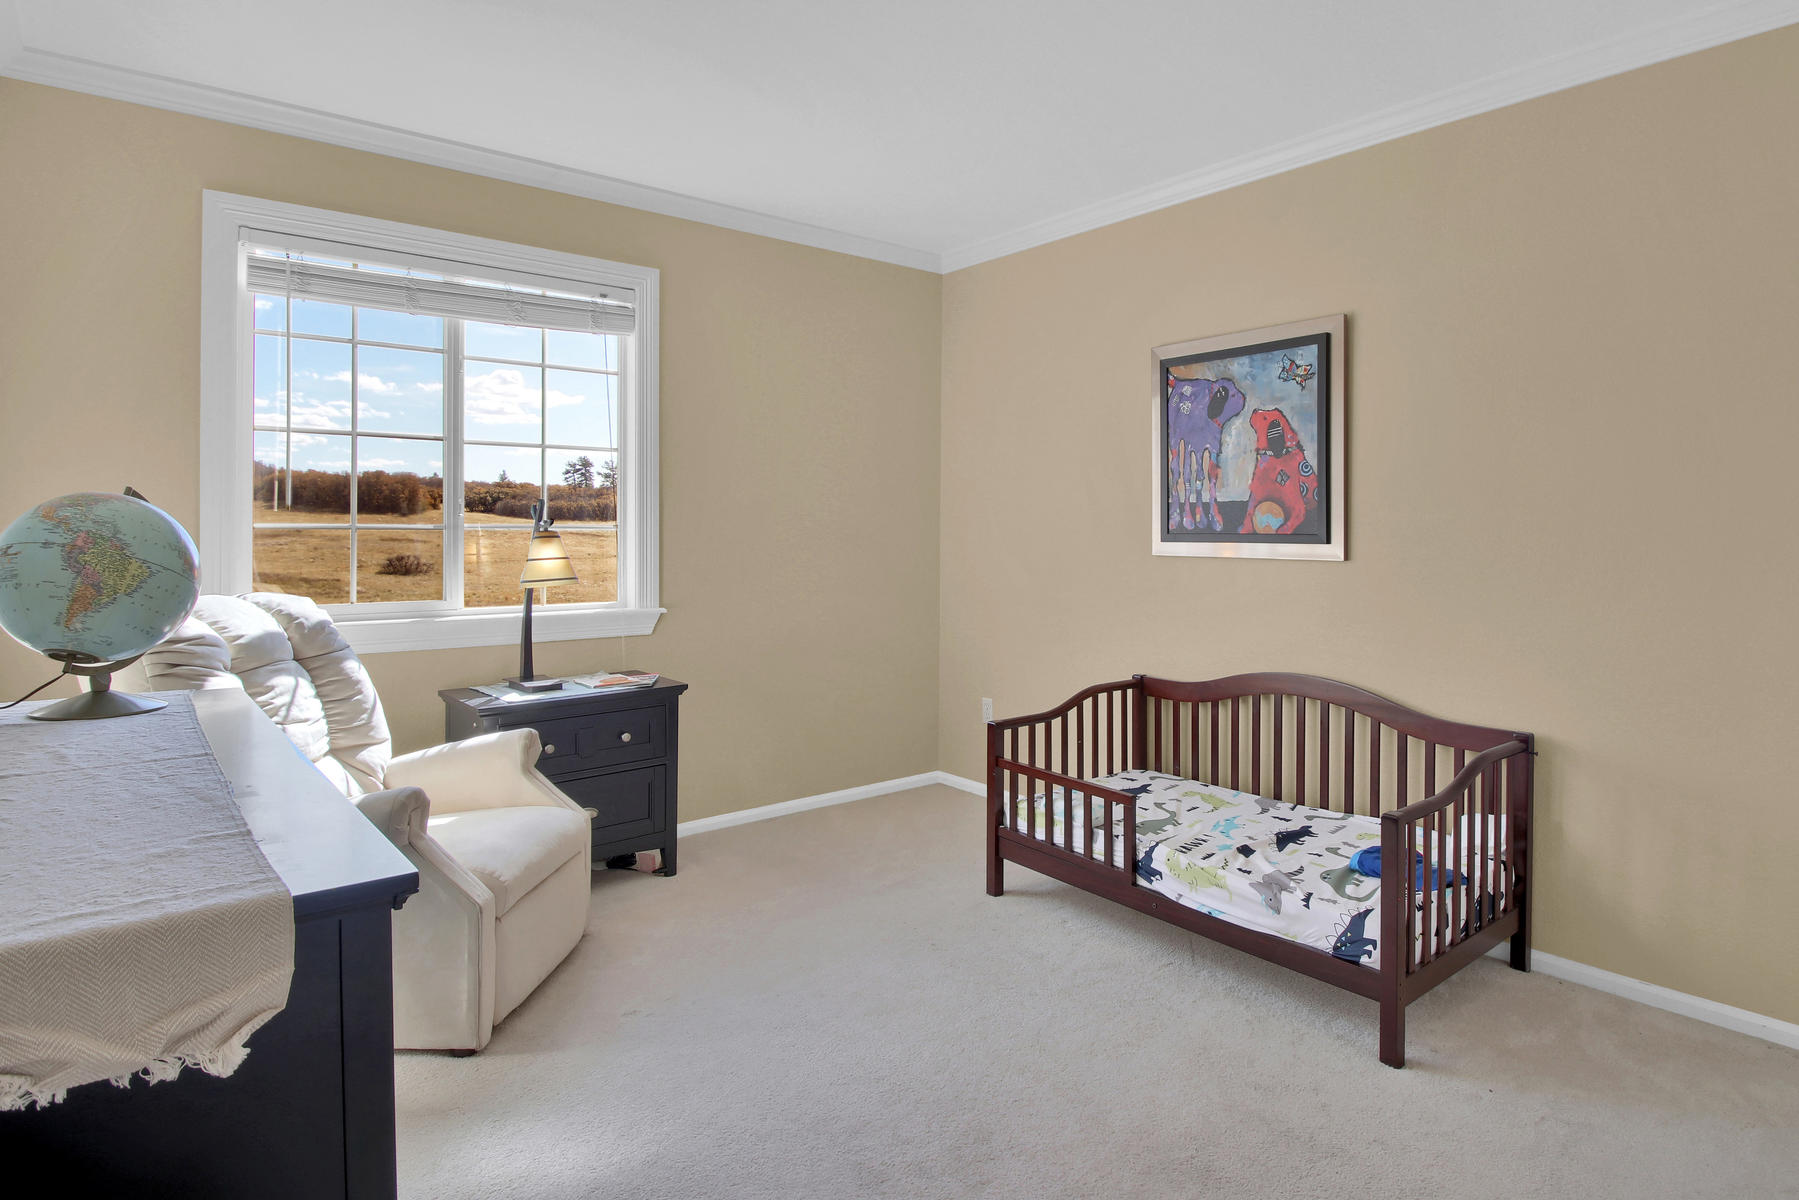 310 W Prestwick Way Castle-033-31-Bedroom-MLS_Size.jpg